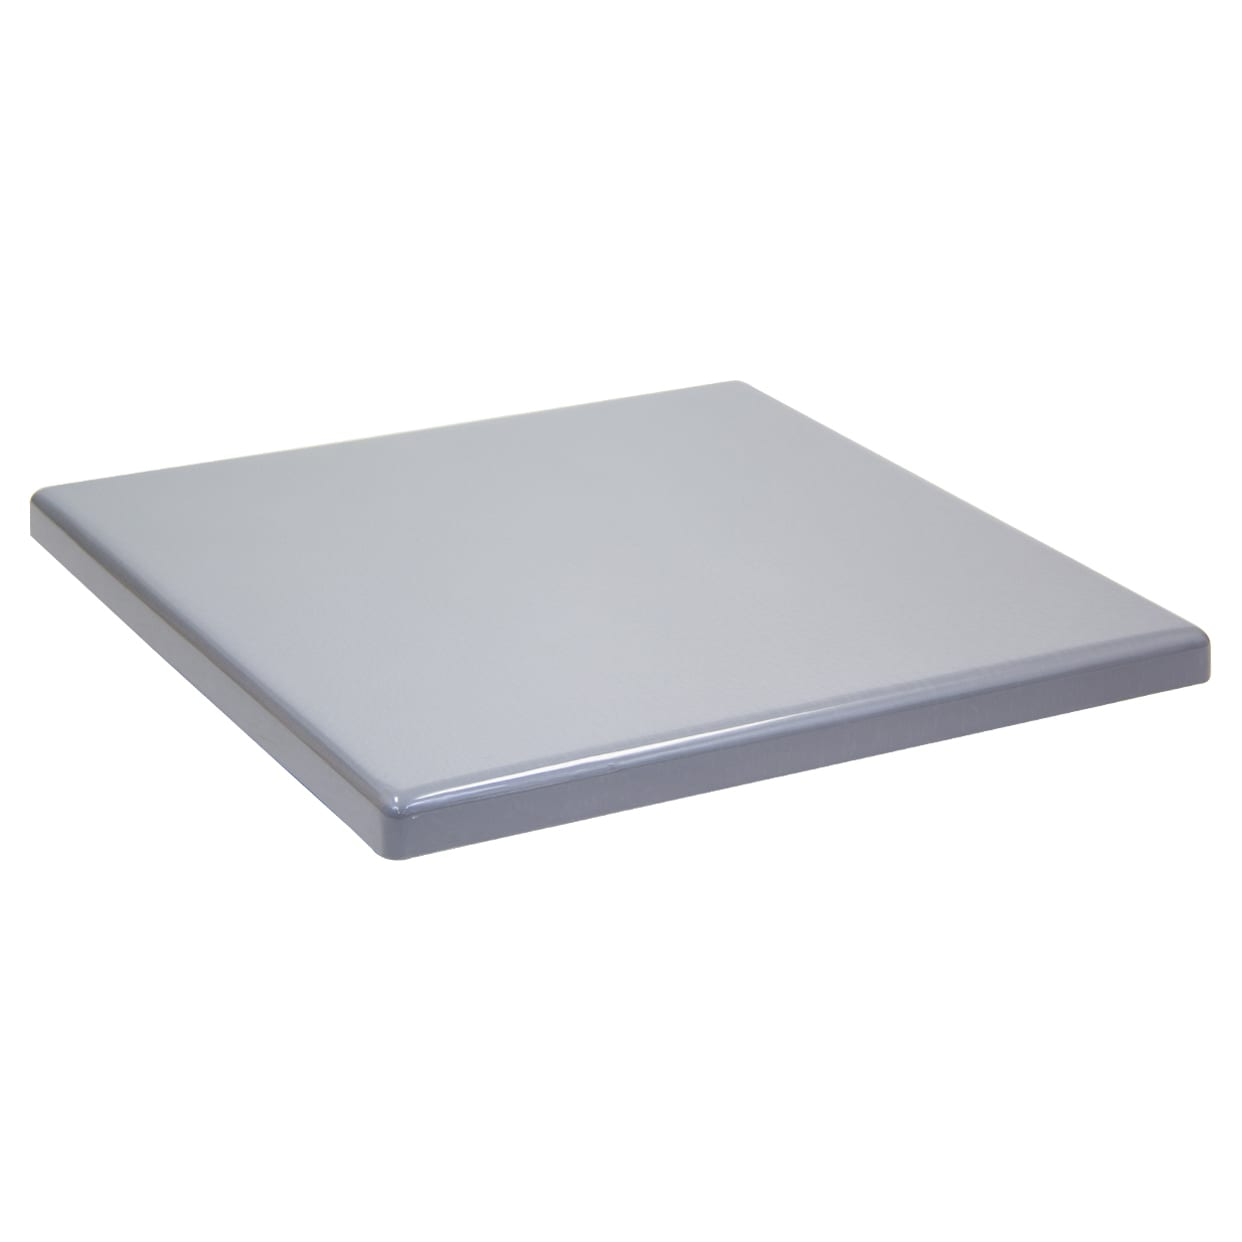 Outdoor Resin Table Top in Grey Finish